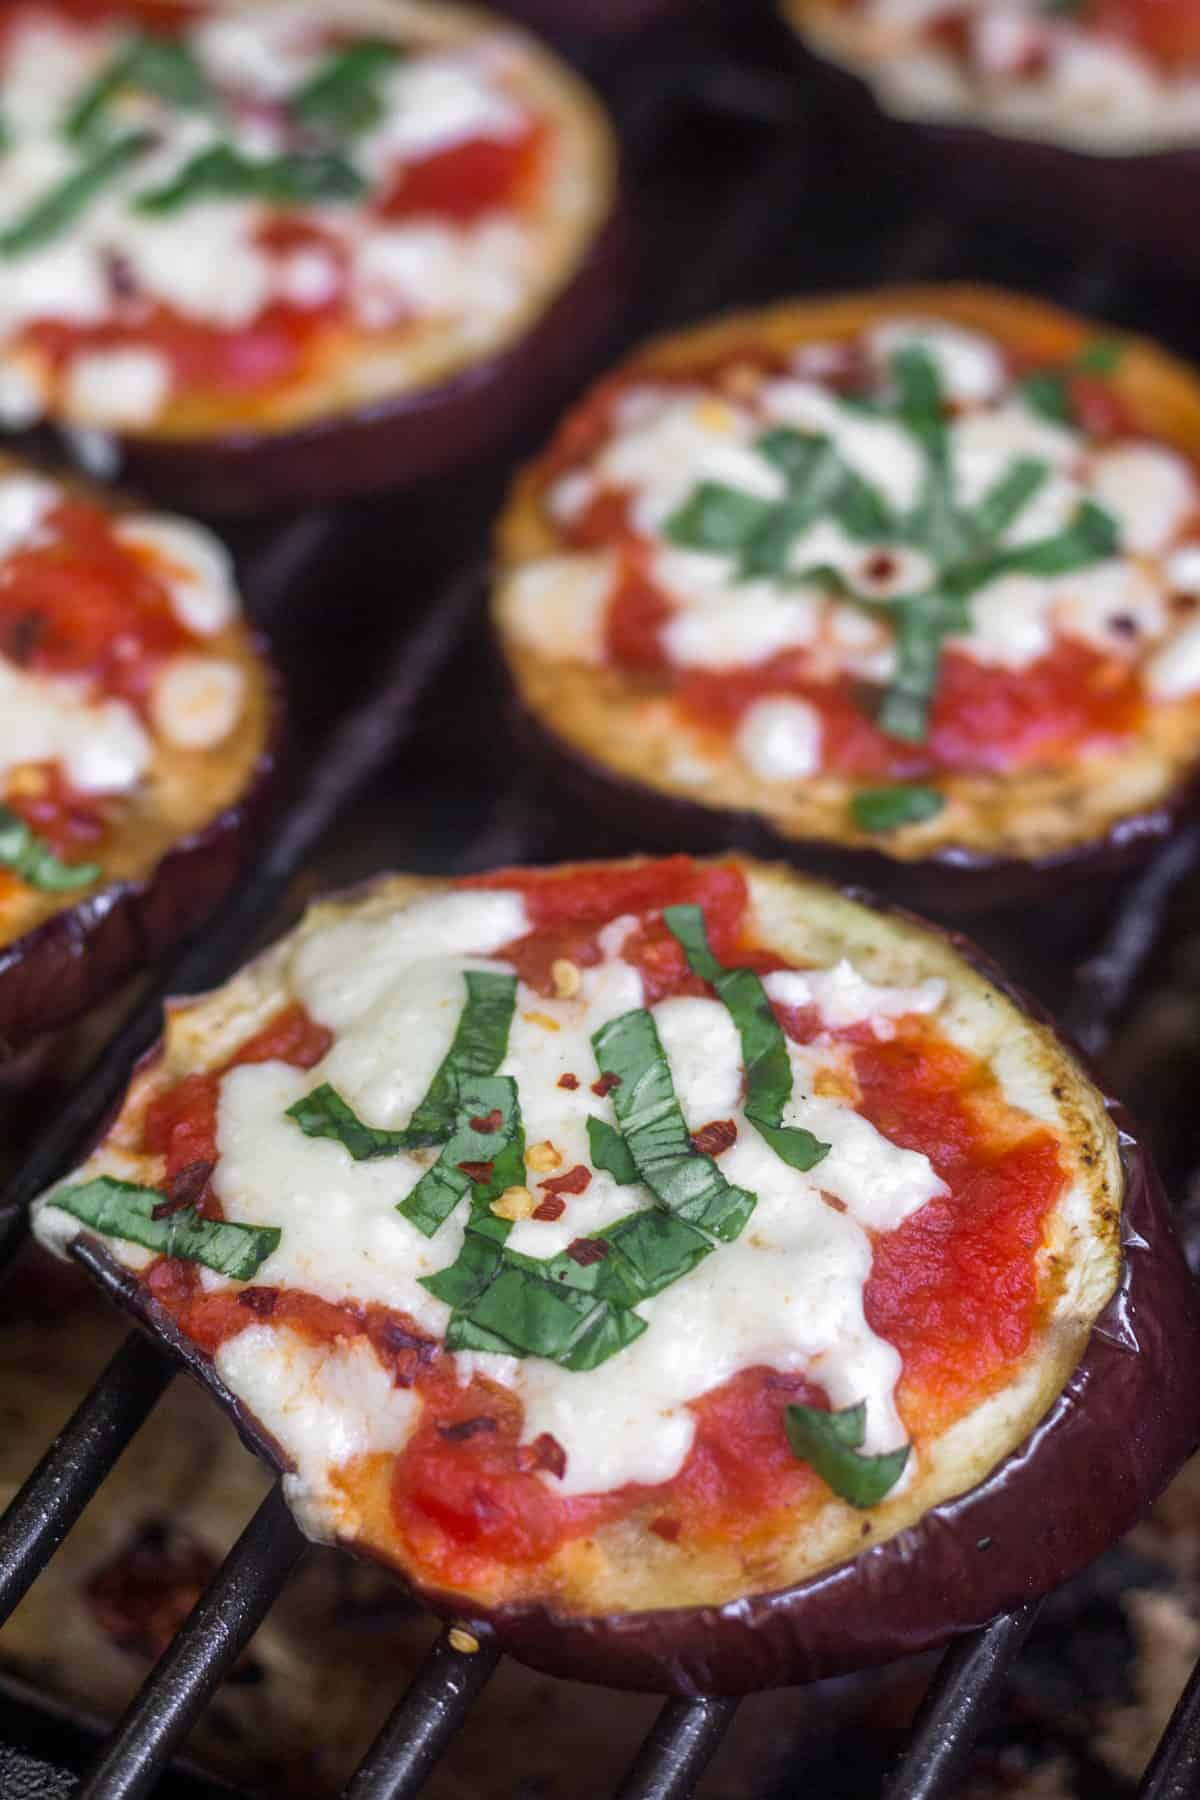 Close up on a grilled eggplant pizza sitting on a grill with other eggplant pizzas behind it